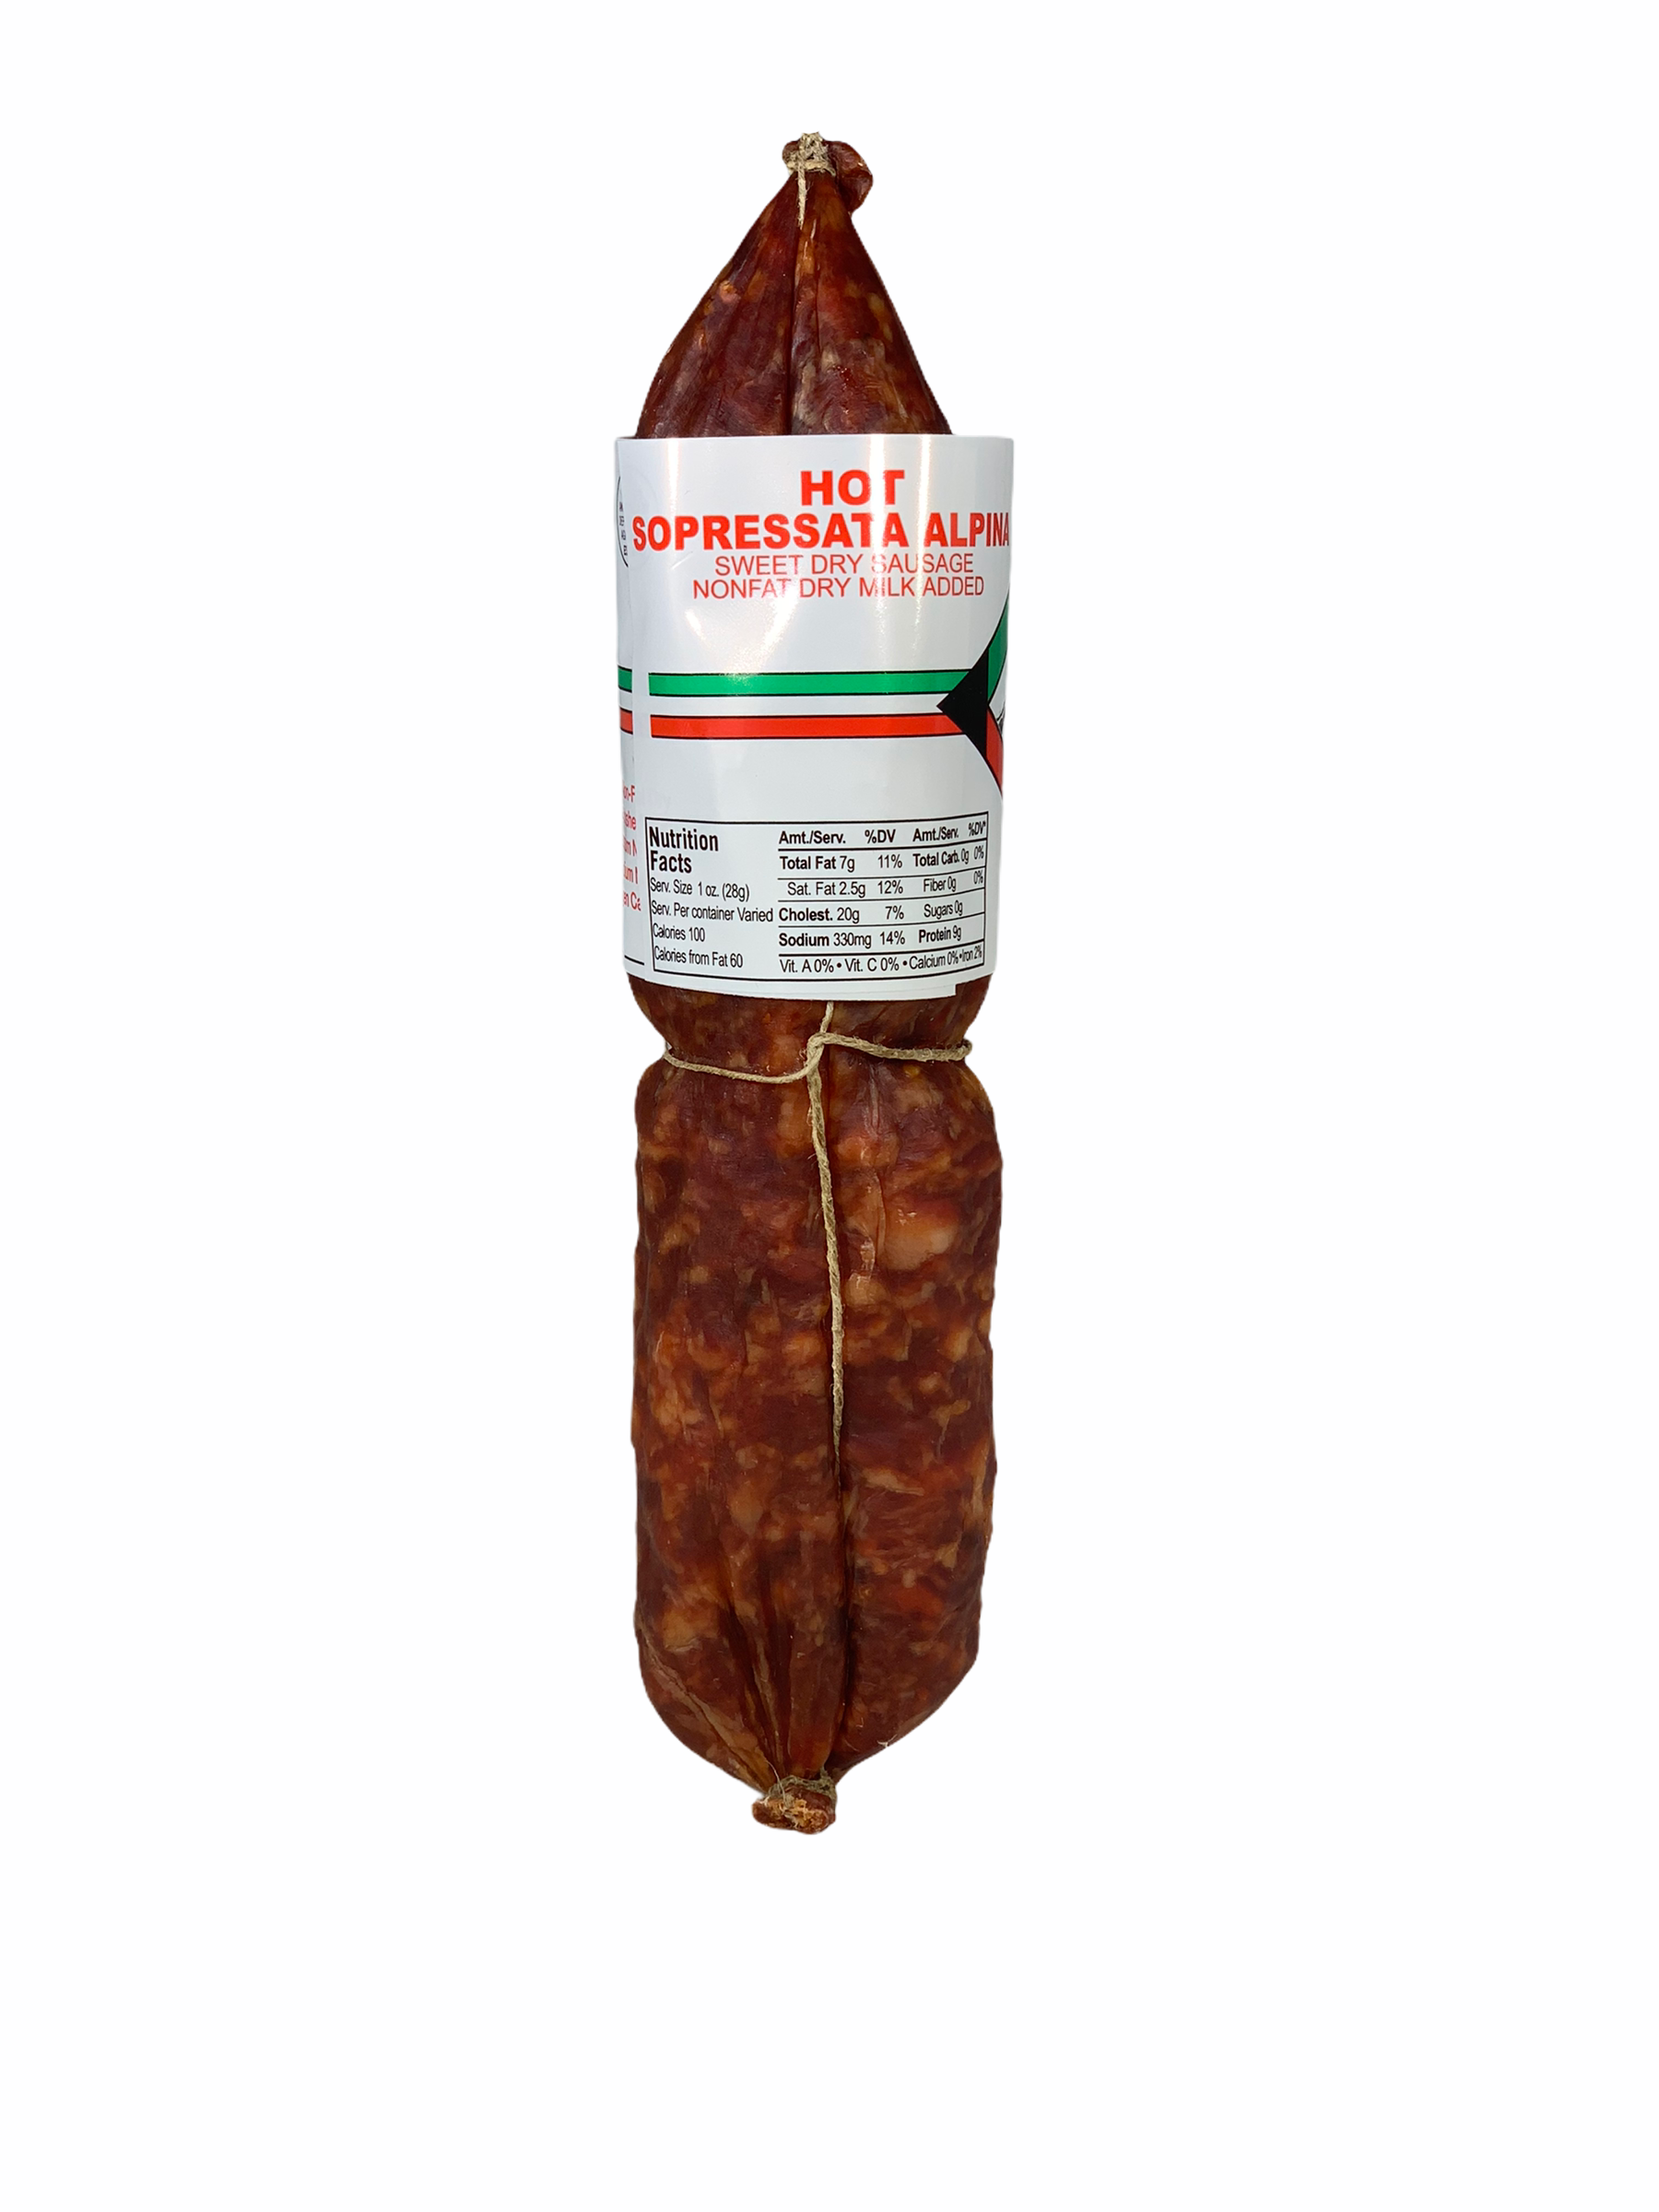 Hot Soppressata Alpina, Alps approximately 1Lb